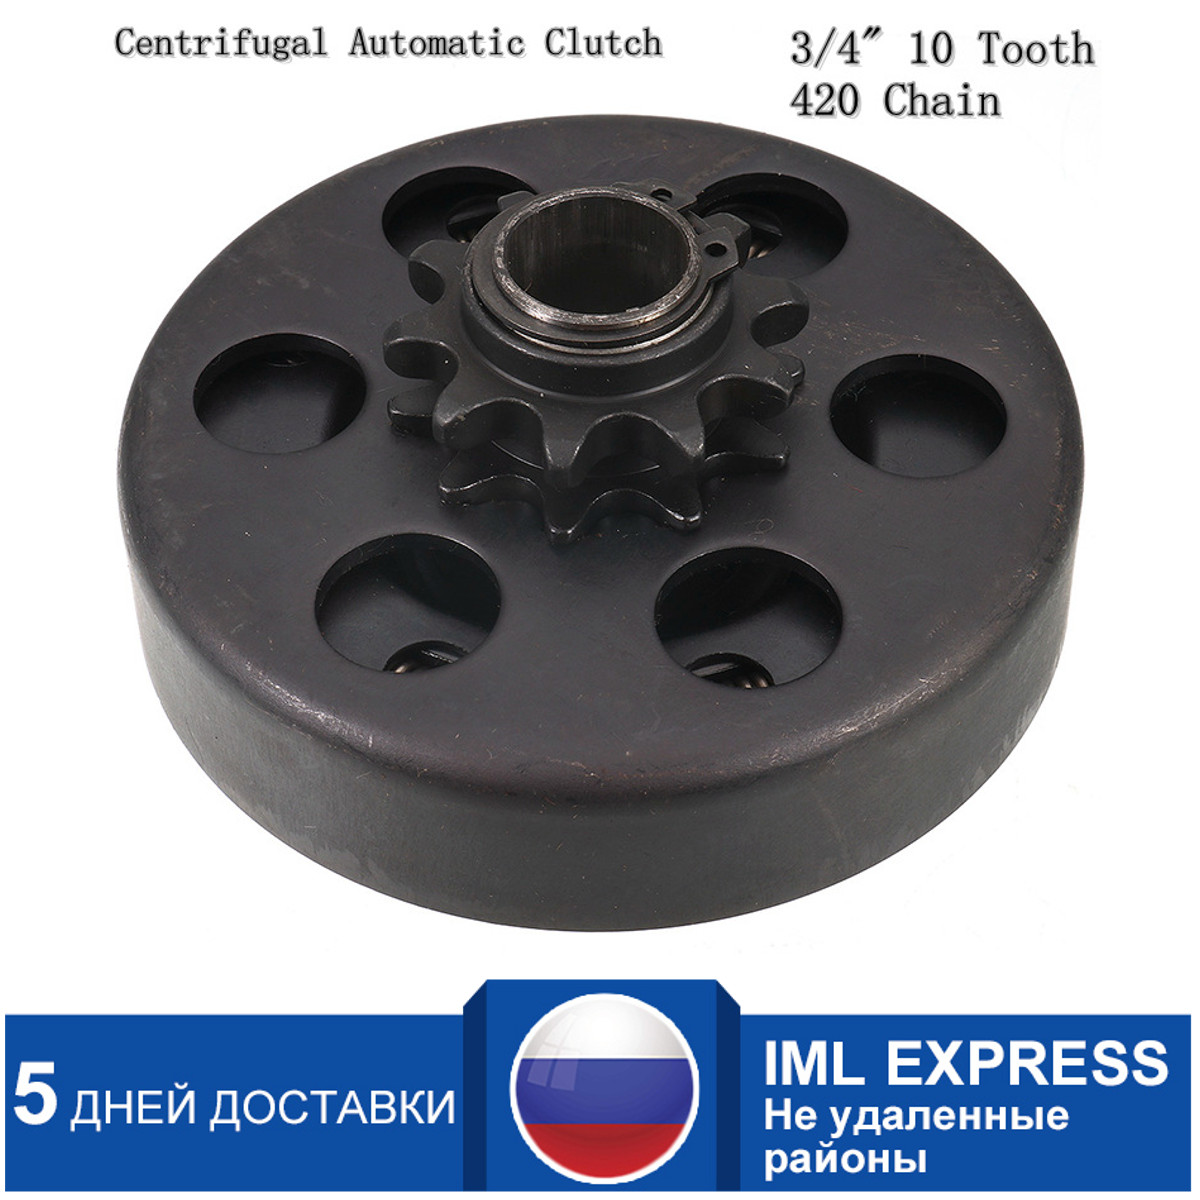 """19mm GO Kart Fun Centrifugal Automatic Clutch 3/4"""" 10 Tooth 420 Chain for Karting-in Clutch & Accessories from Automobiles & Motorcycles"""